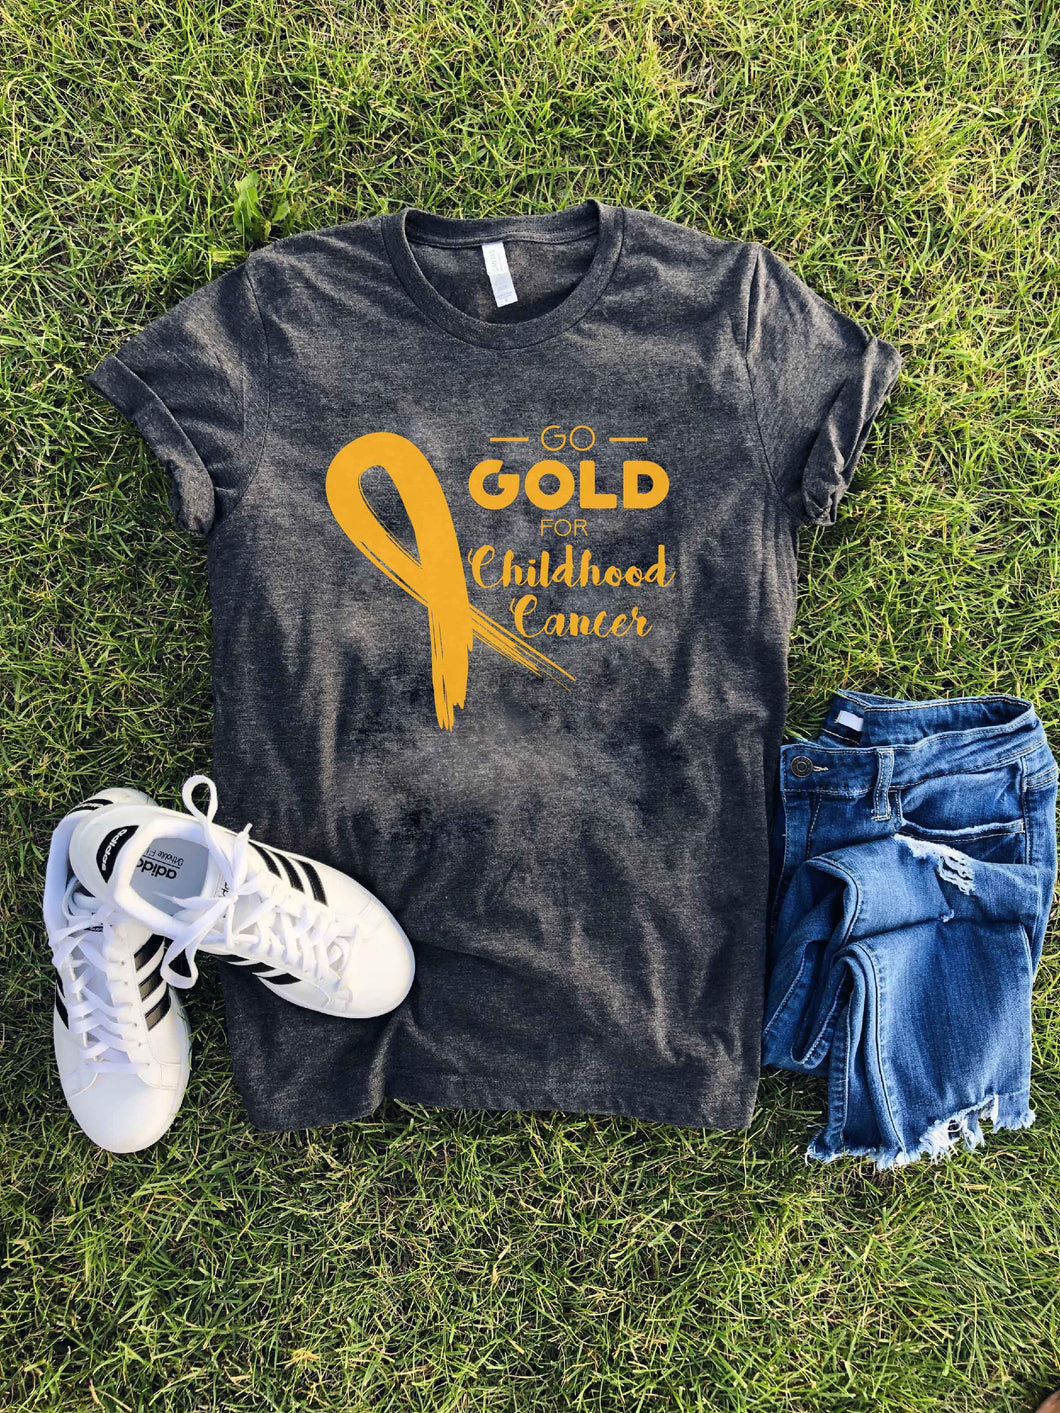 Go Gold for child cancer Child cancer tee Bella Canvas 3001 dark heather grey